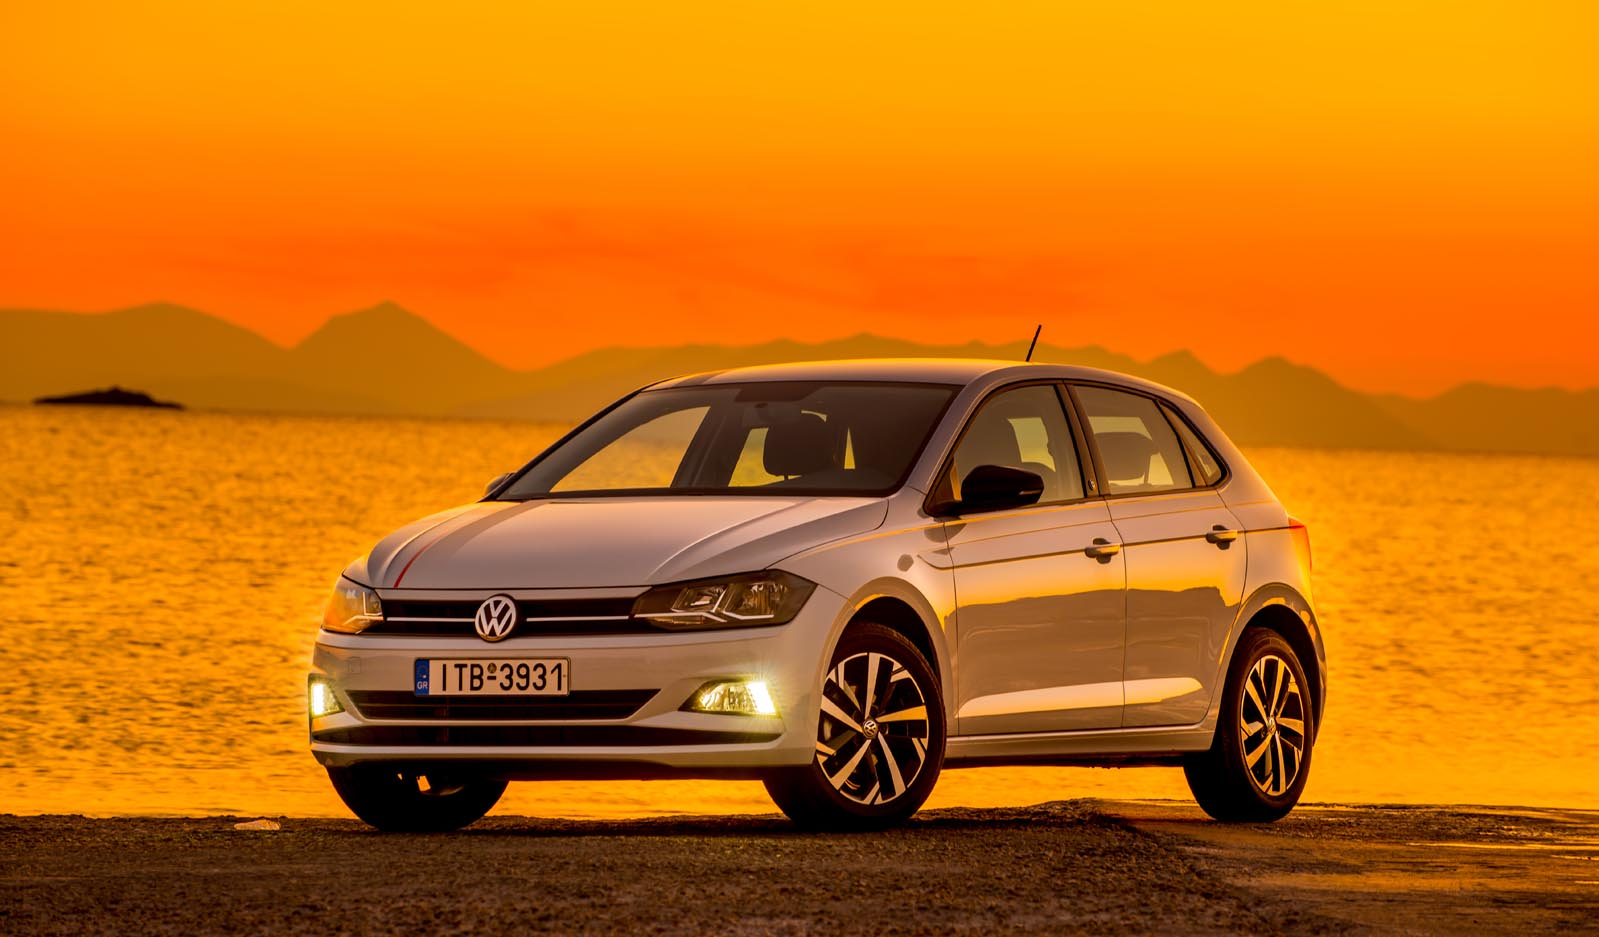 Photo of Volkswagen Polo 1.0 TSI (95 PS) [test drive]